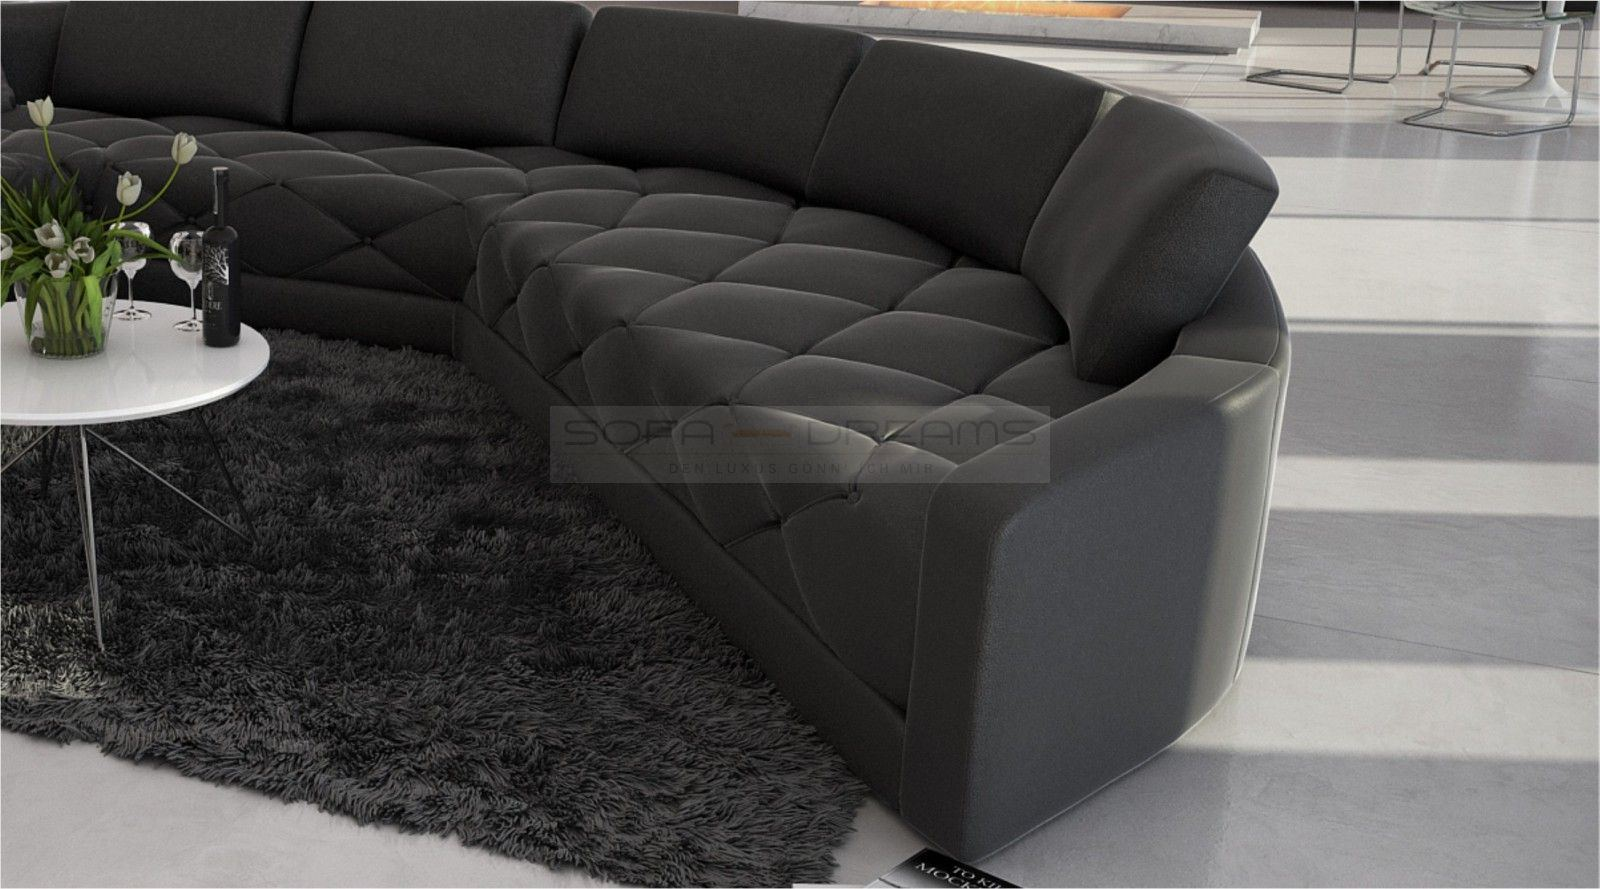 rundsofa secreto gesteppte sitzfl che designersofa. Black Bedroom Furniture Sets. Home Design Ideas